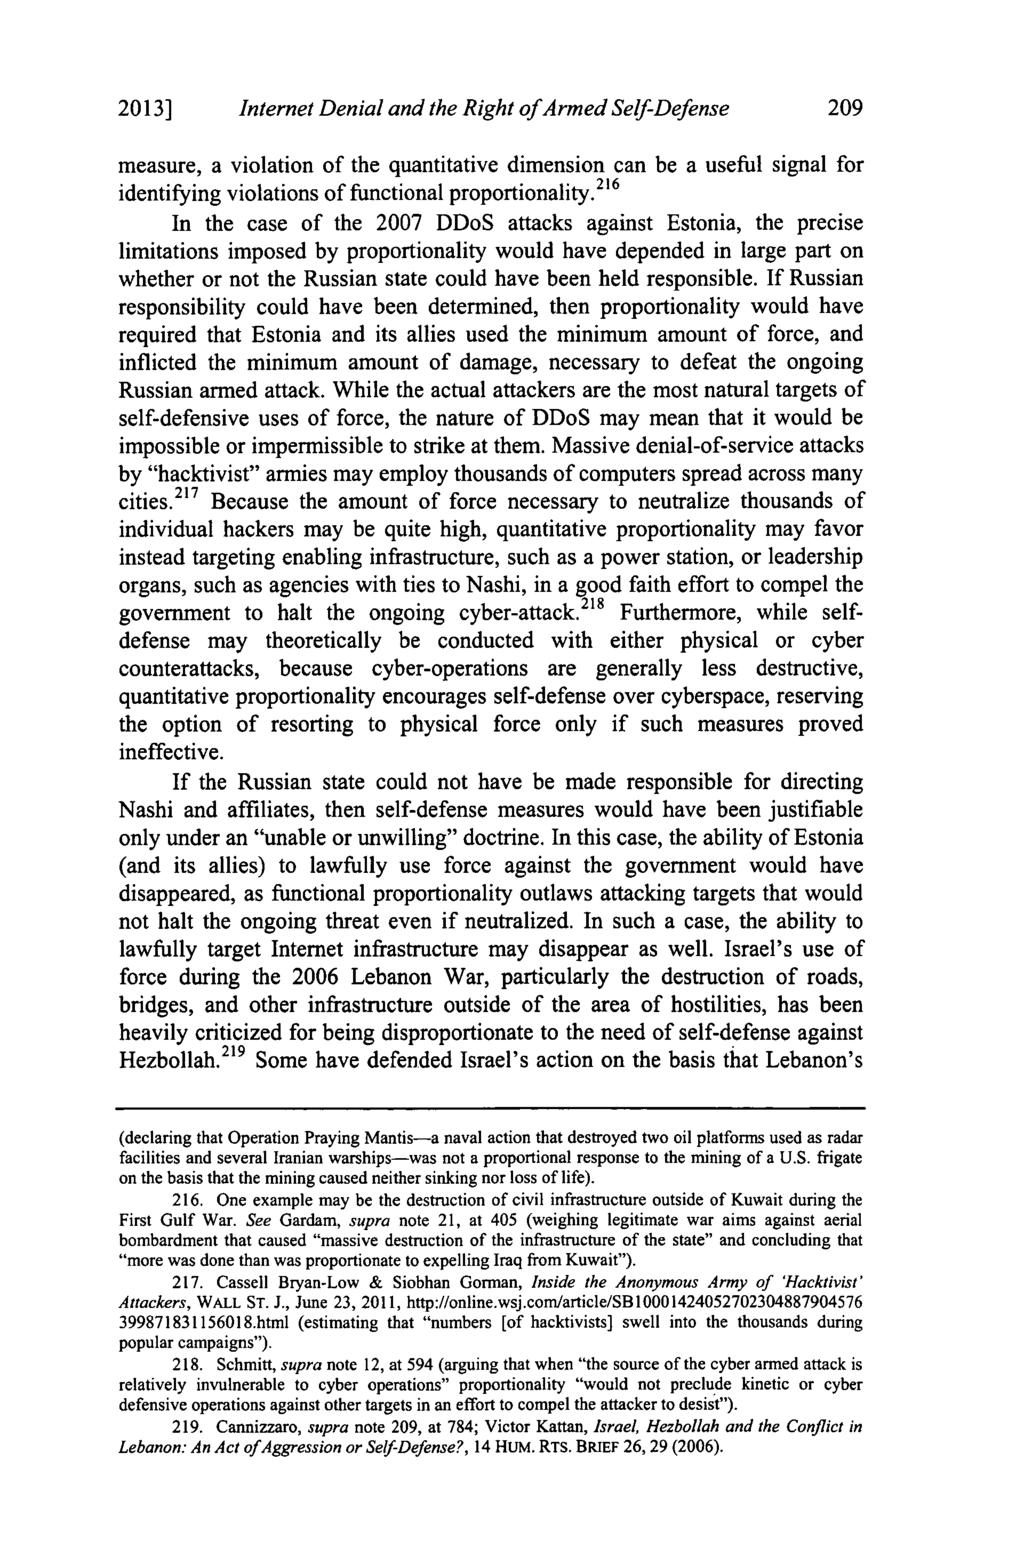 2013] Internet Denial and the Right ofarmed Self-Defense 209 measure, a violation of the quantitative dimension can be a useful signal for identifying violations of functional proportionality.